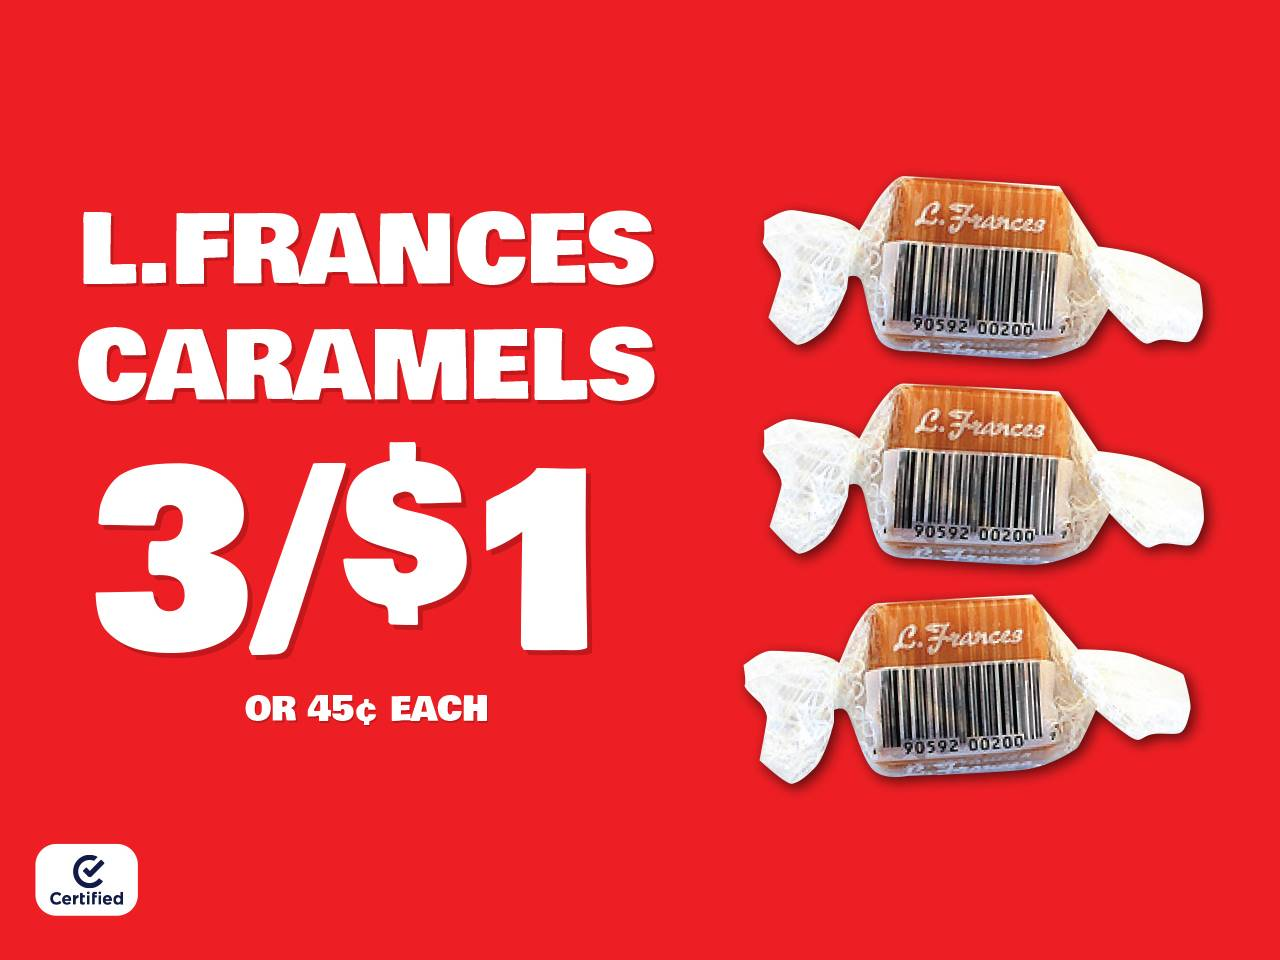 L.Frances Caramels 3 for $1 or $.45 each